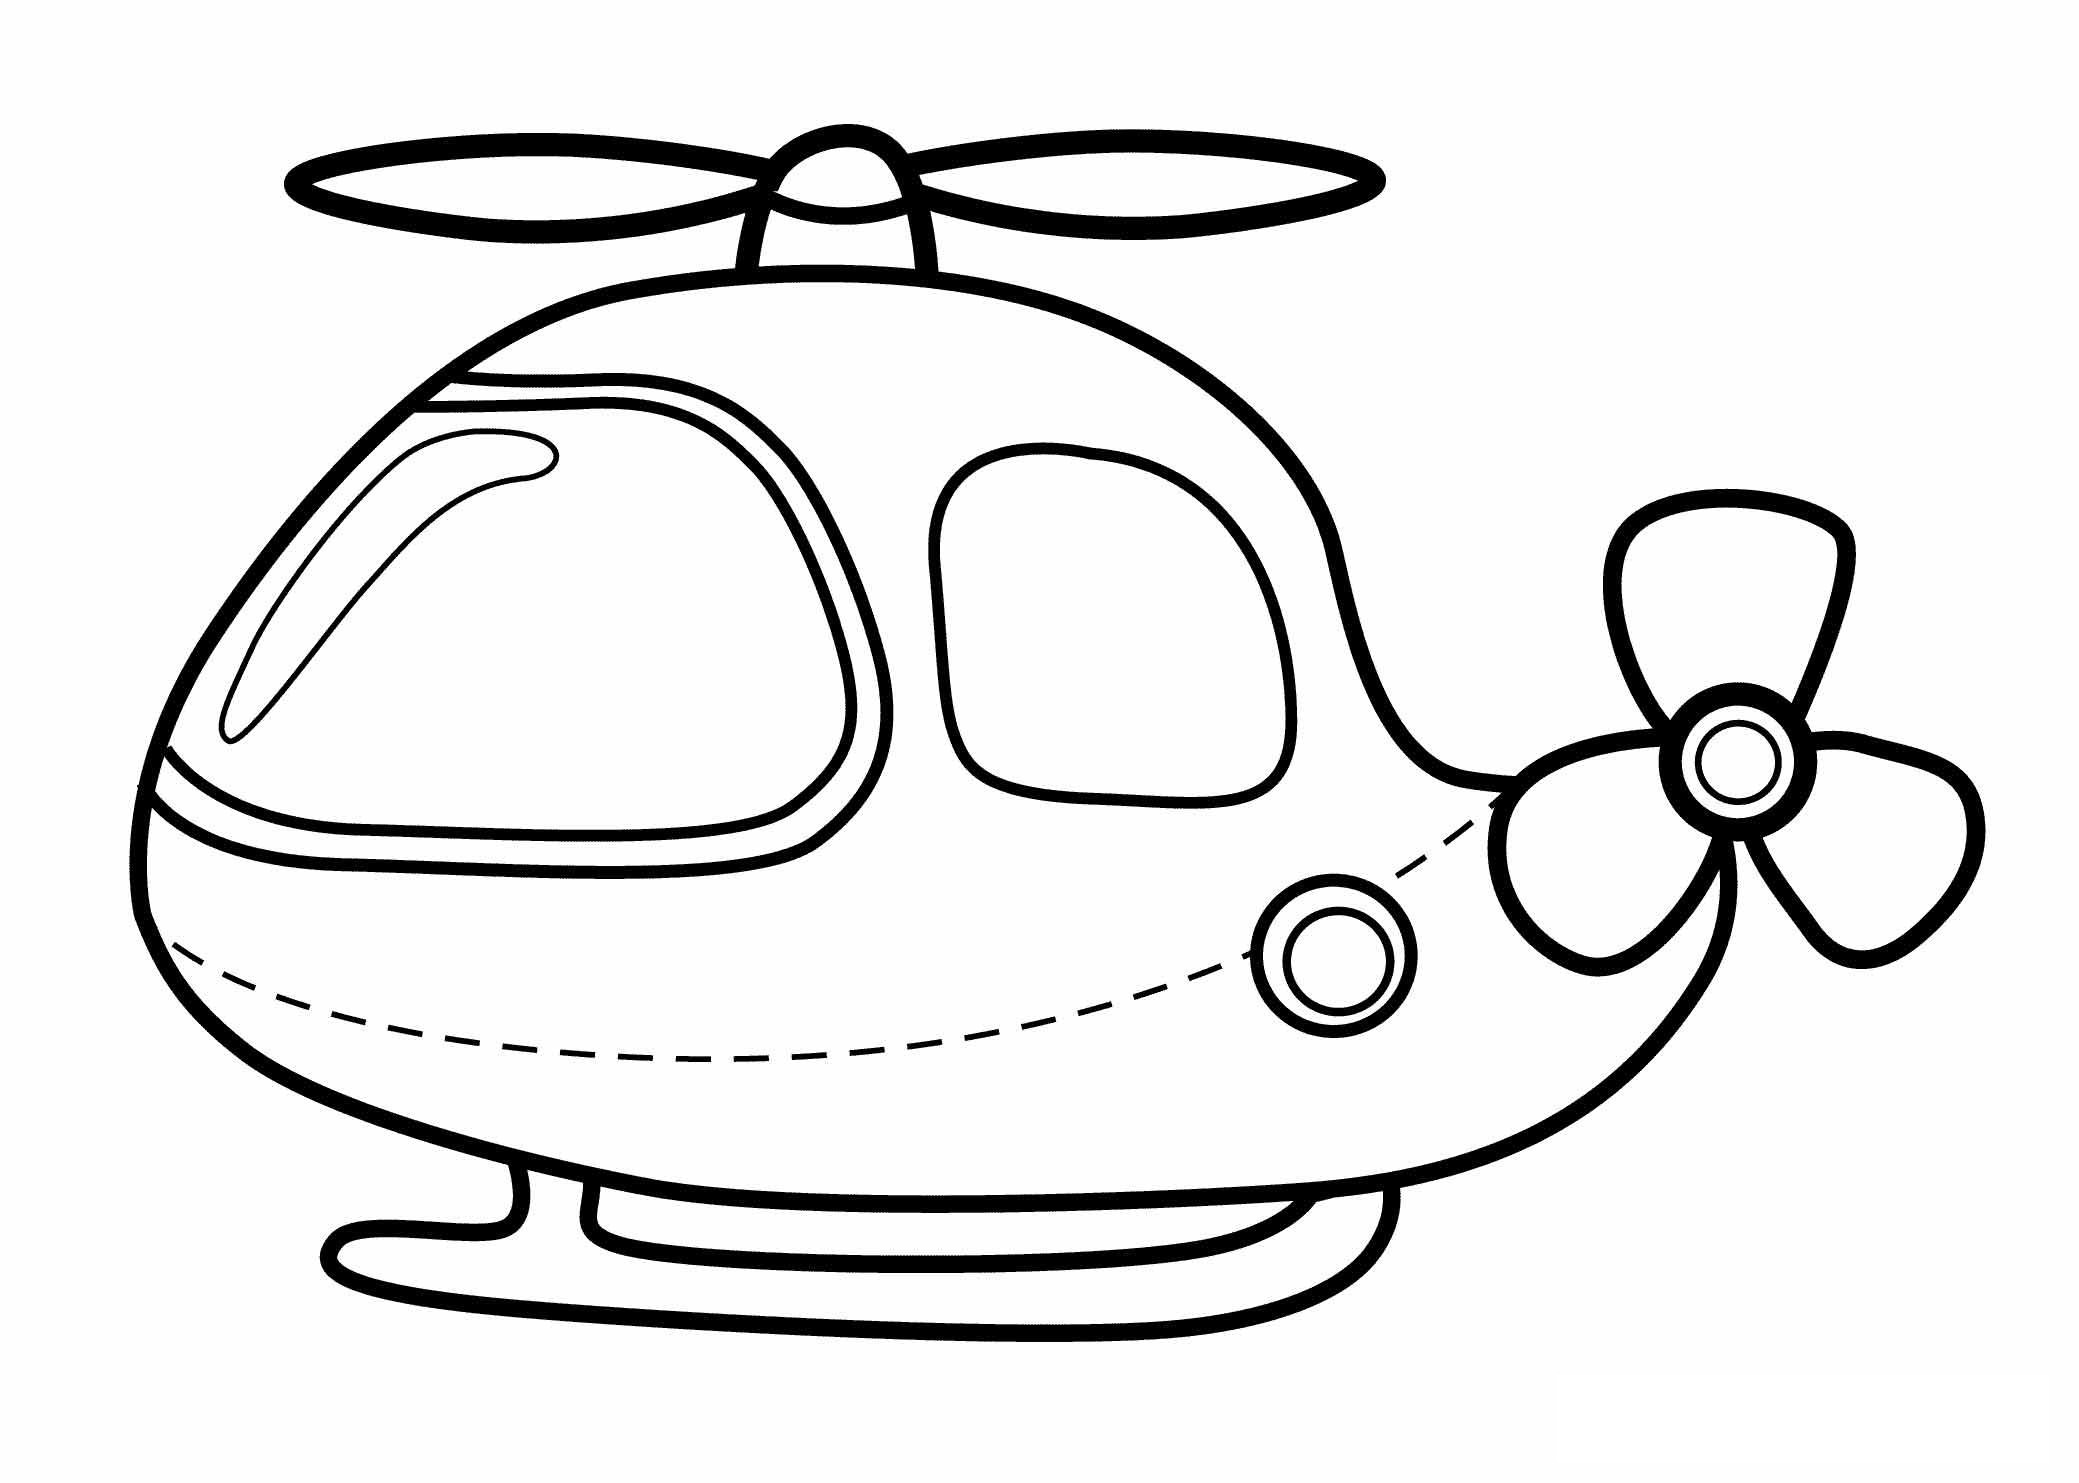 Free printable helicopter coloring pages for kids Coloring book for toddlers